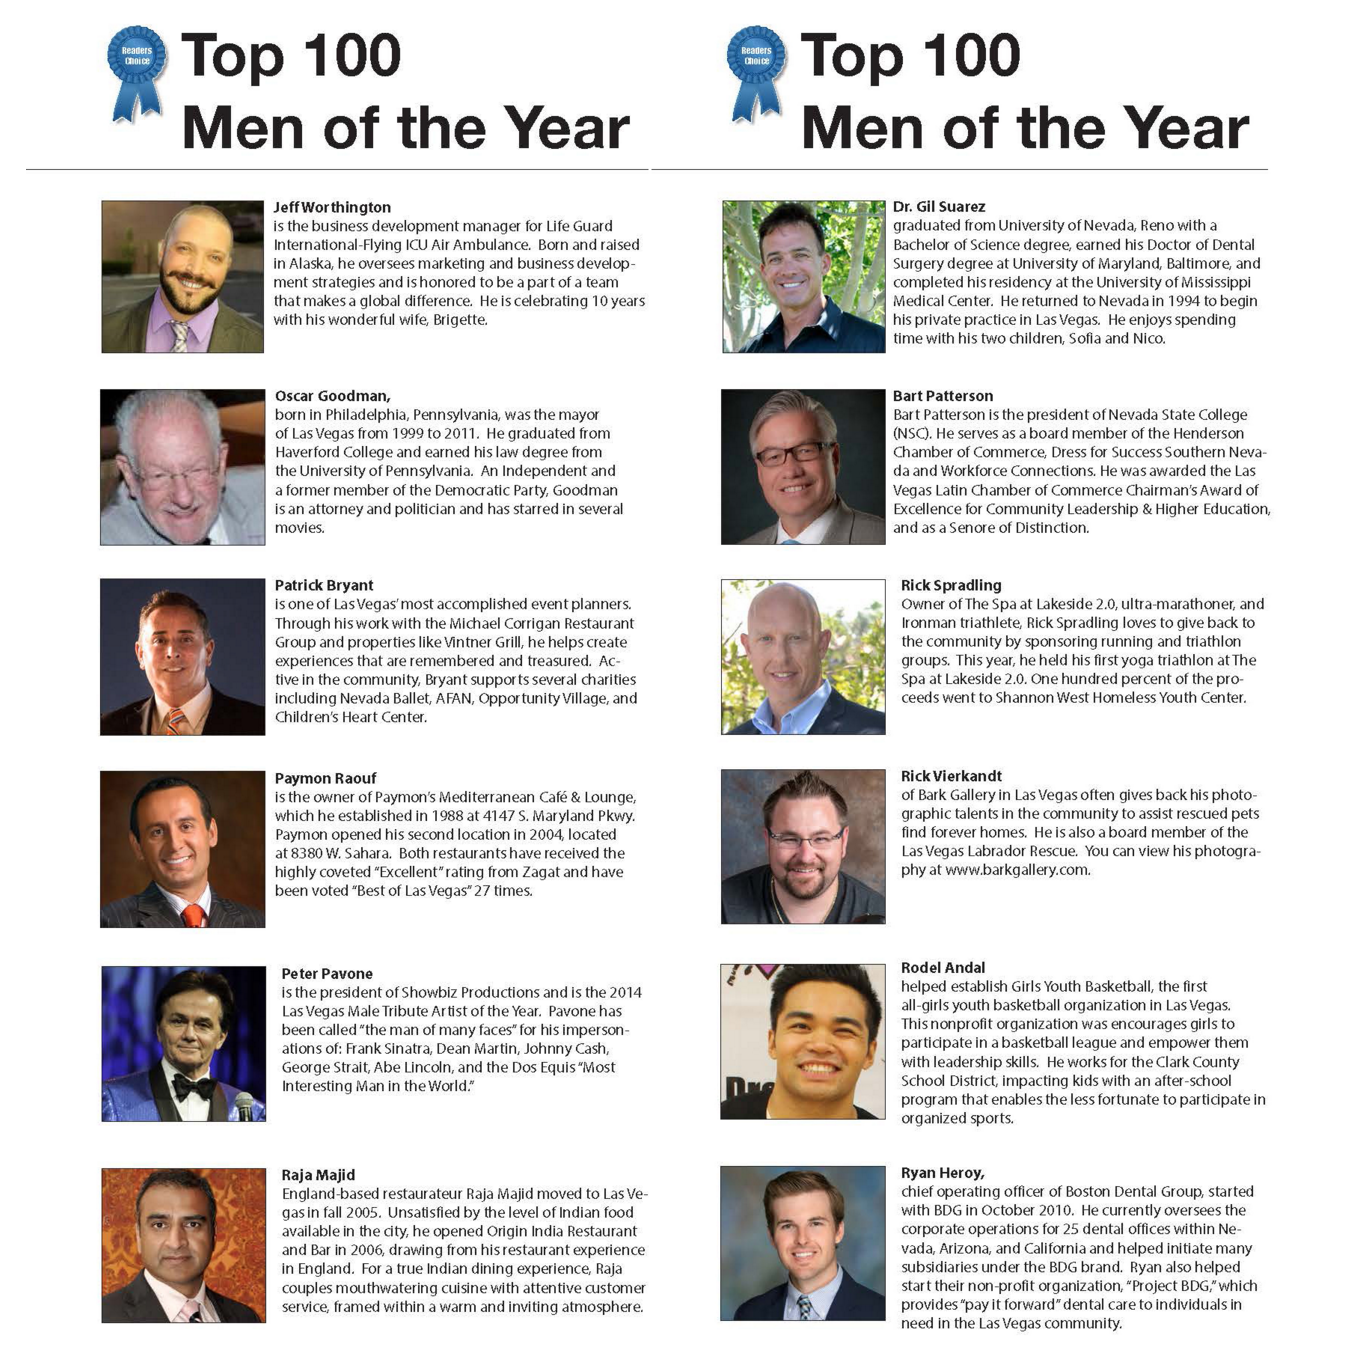 MyVegas Top 100 Men of the Year